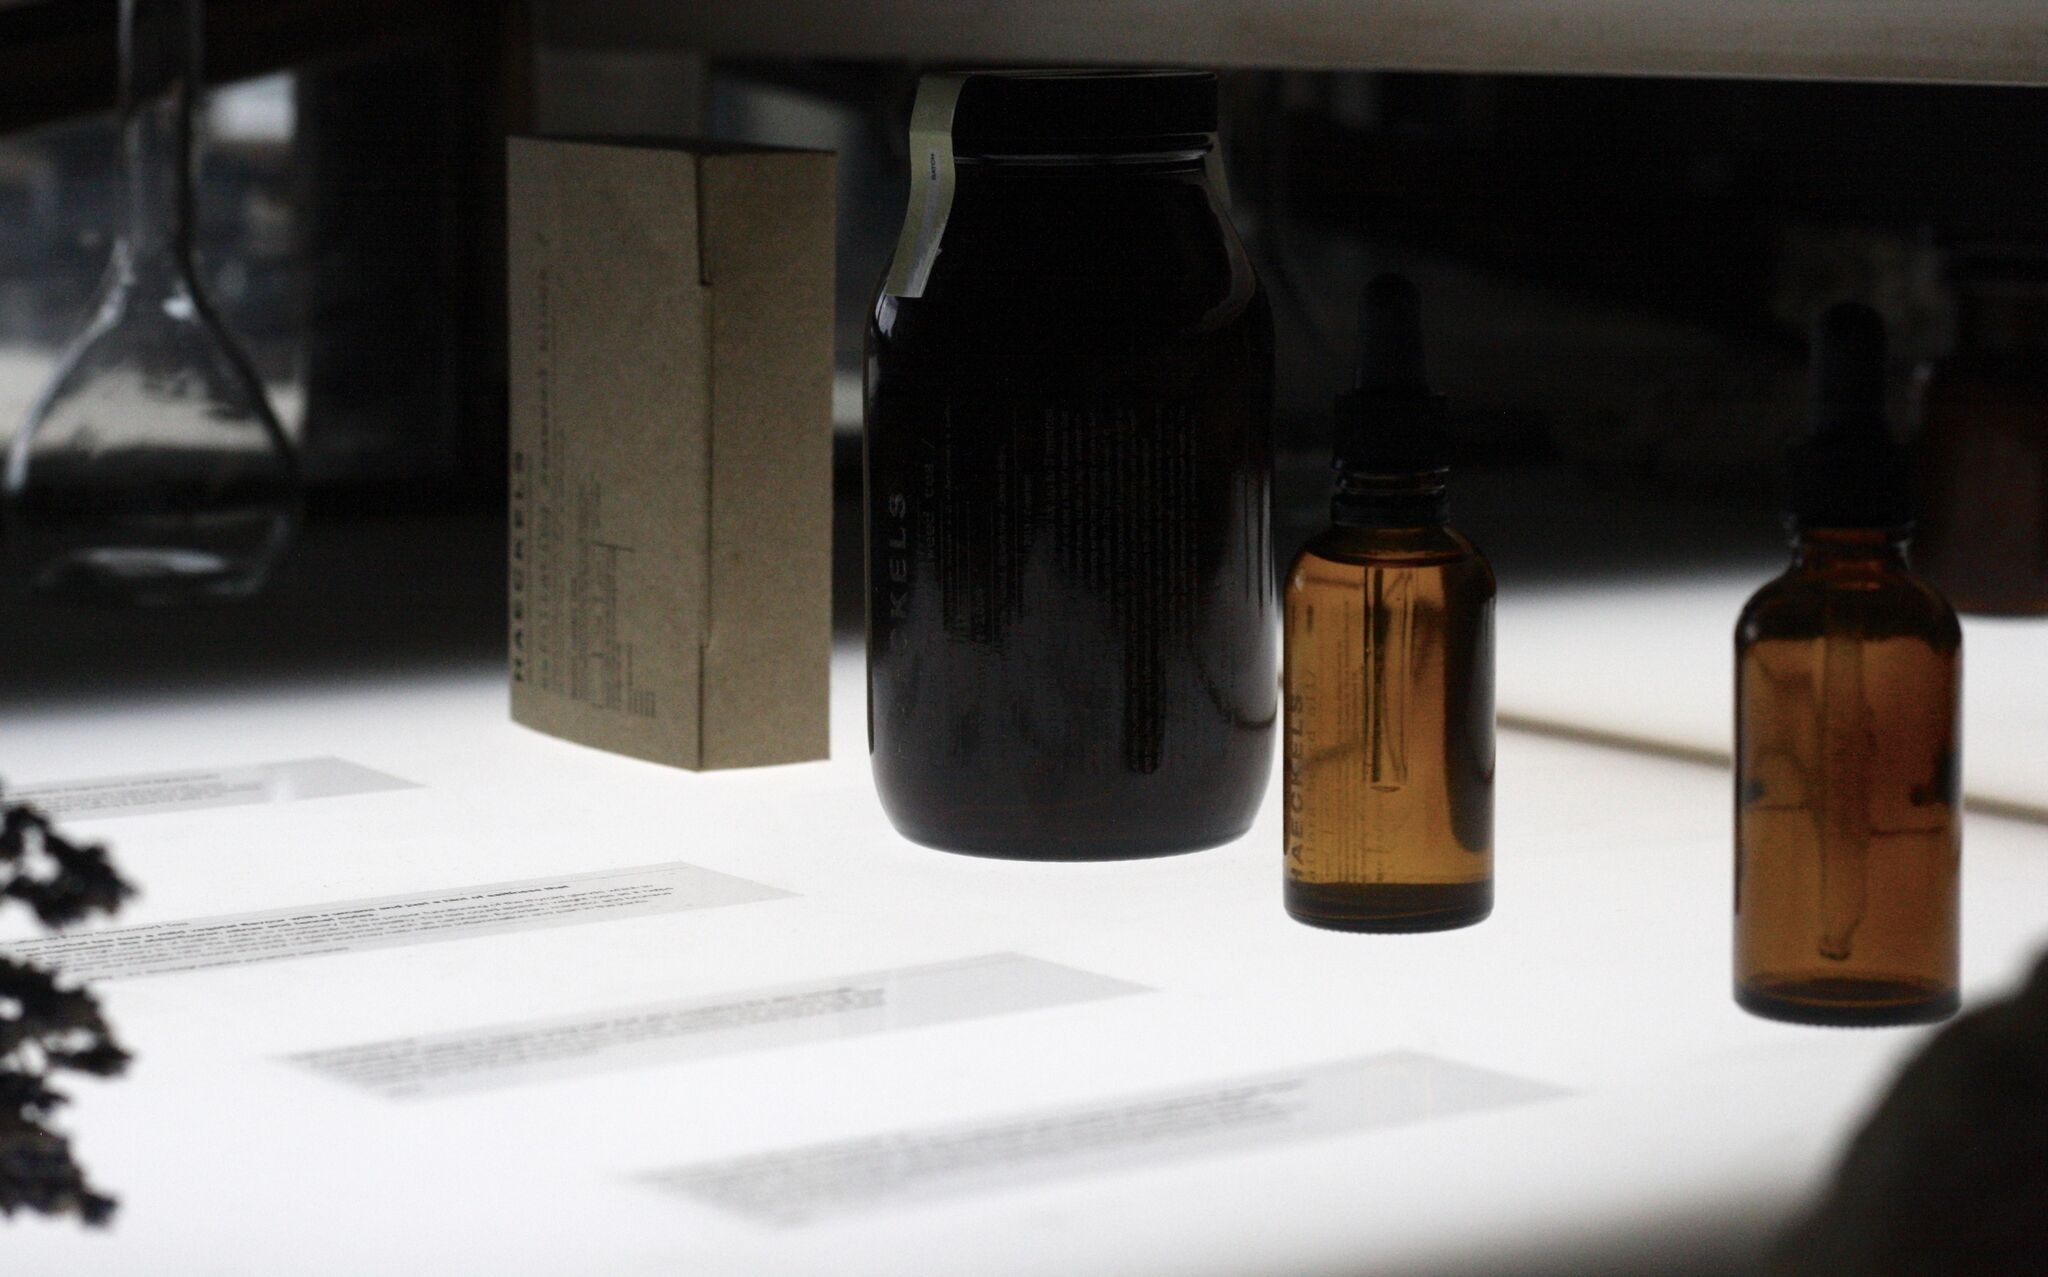 Products on display at Haeckels